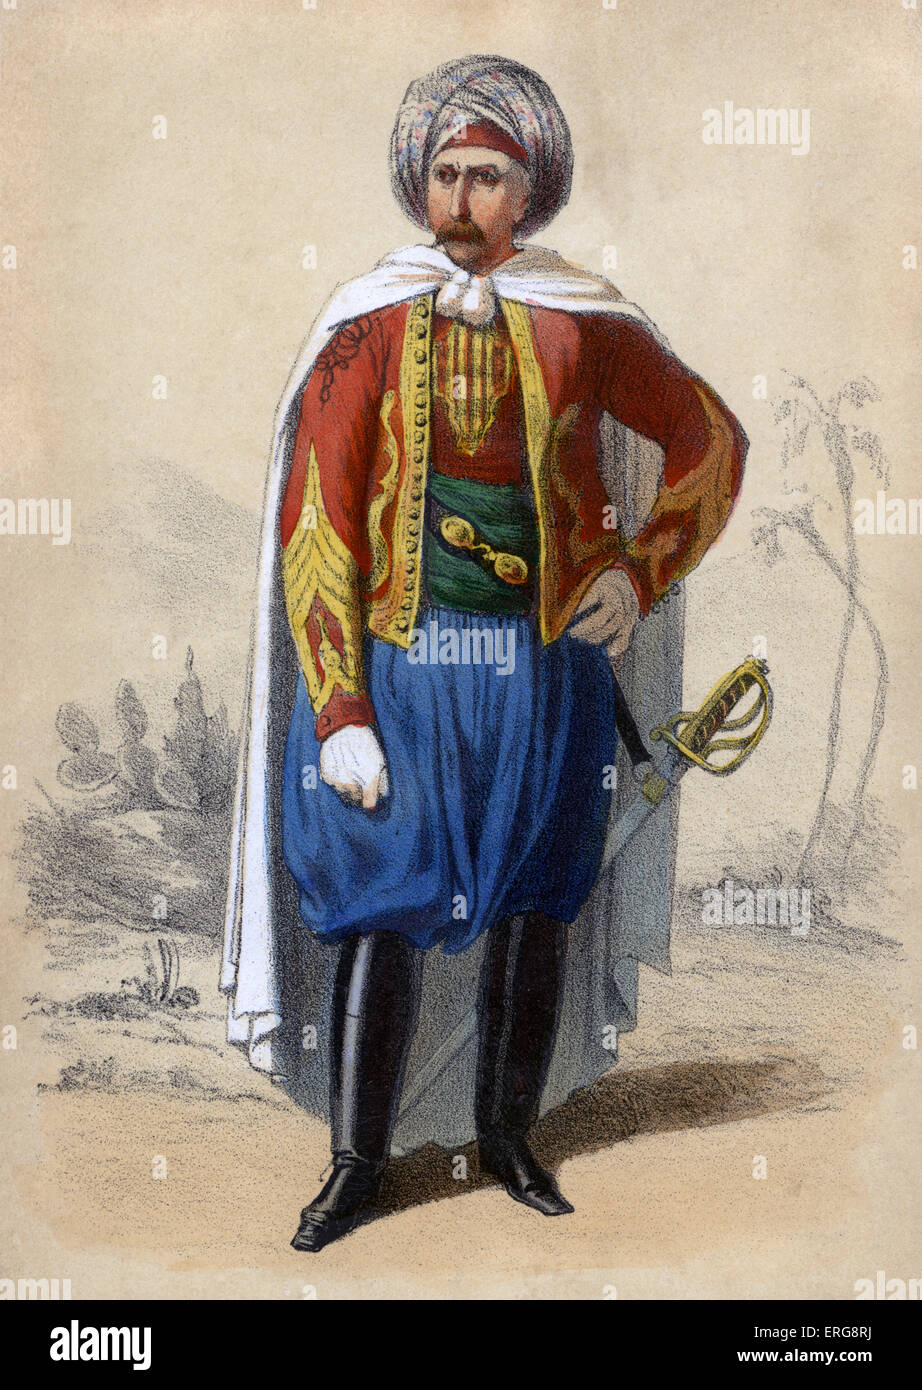 Spahis: member of light cavalry regiments of the 19th century French army recruited primarily from the indigenous - Stock Image